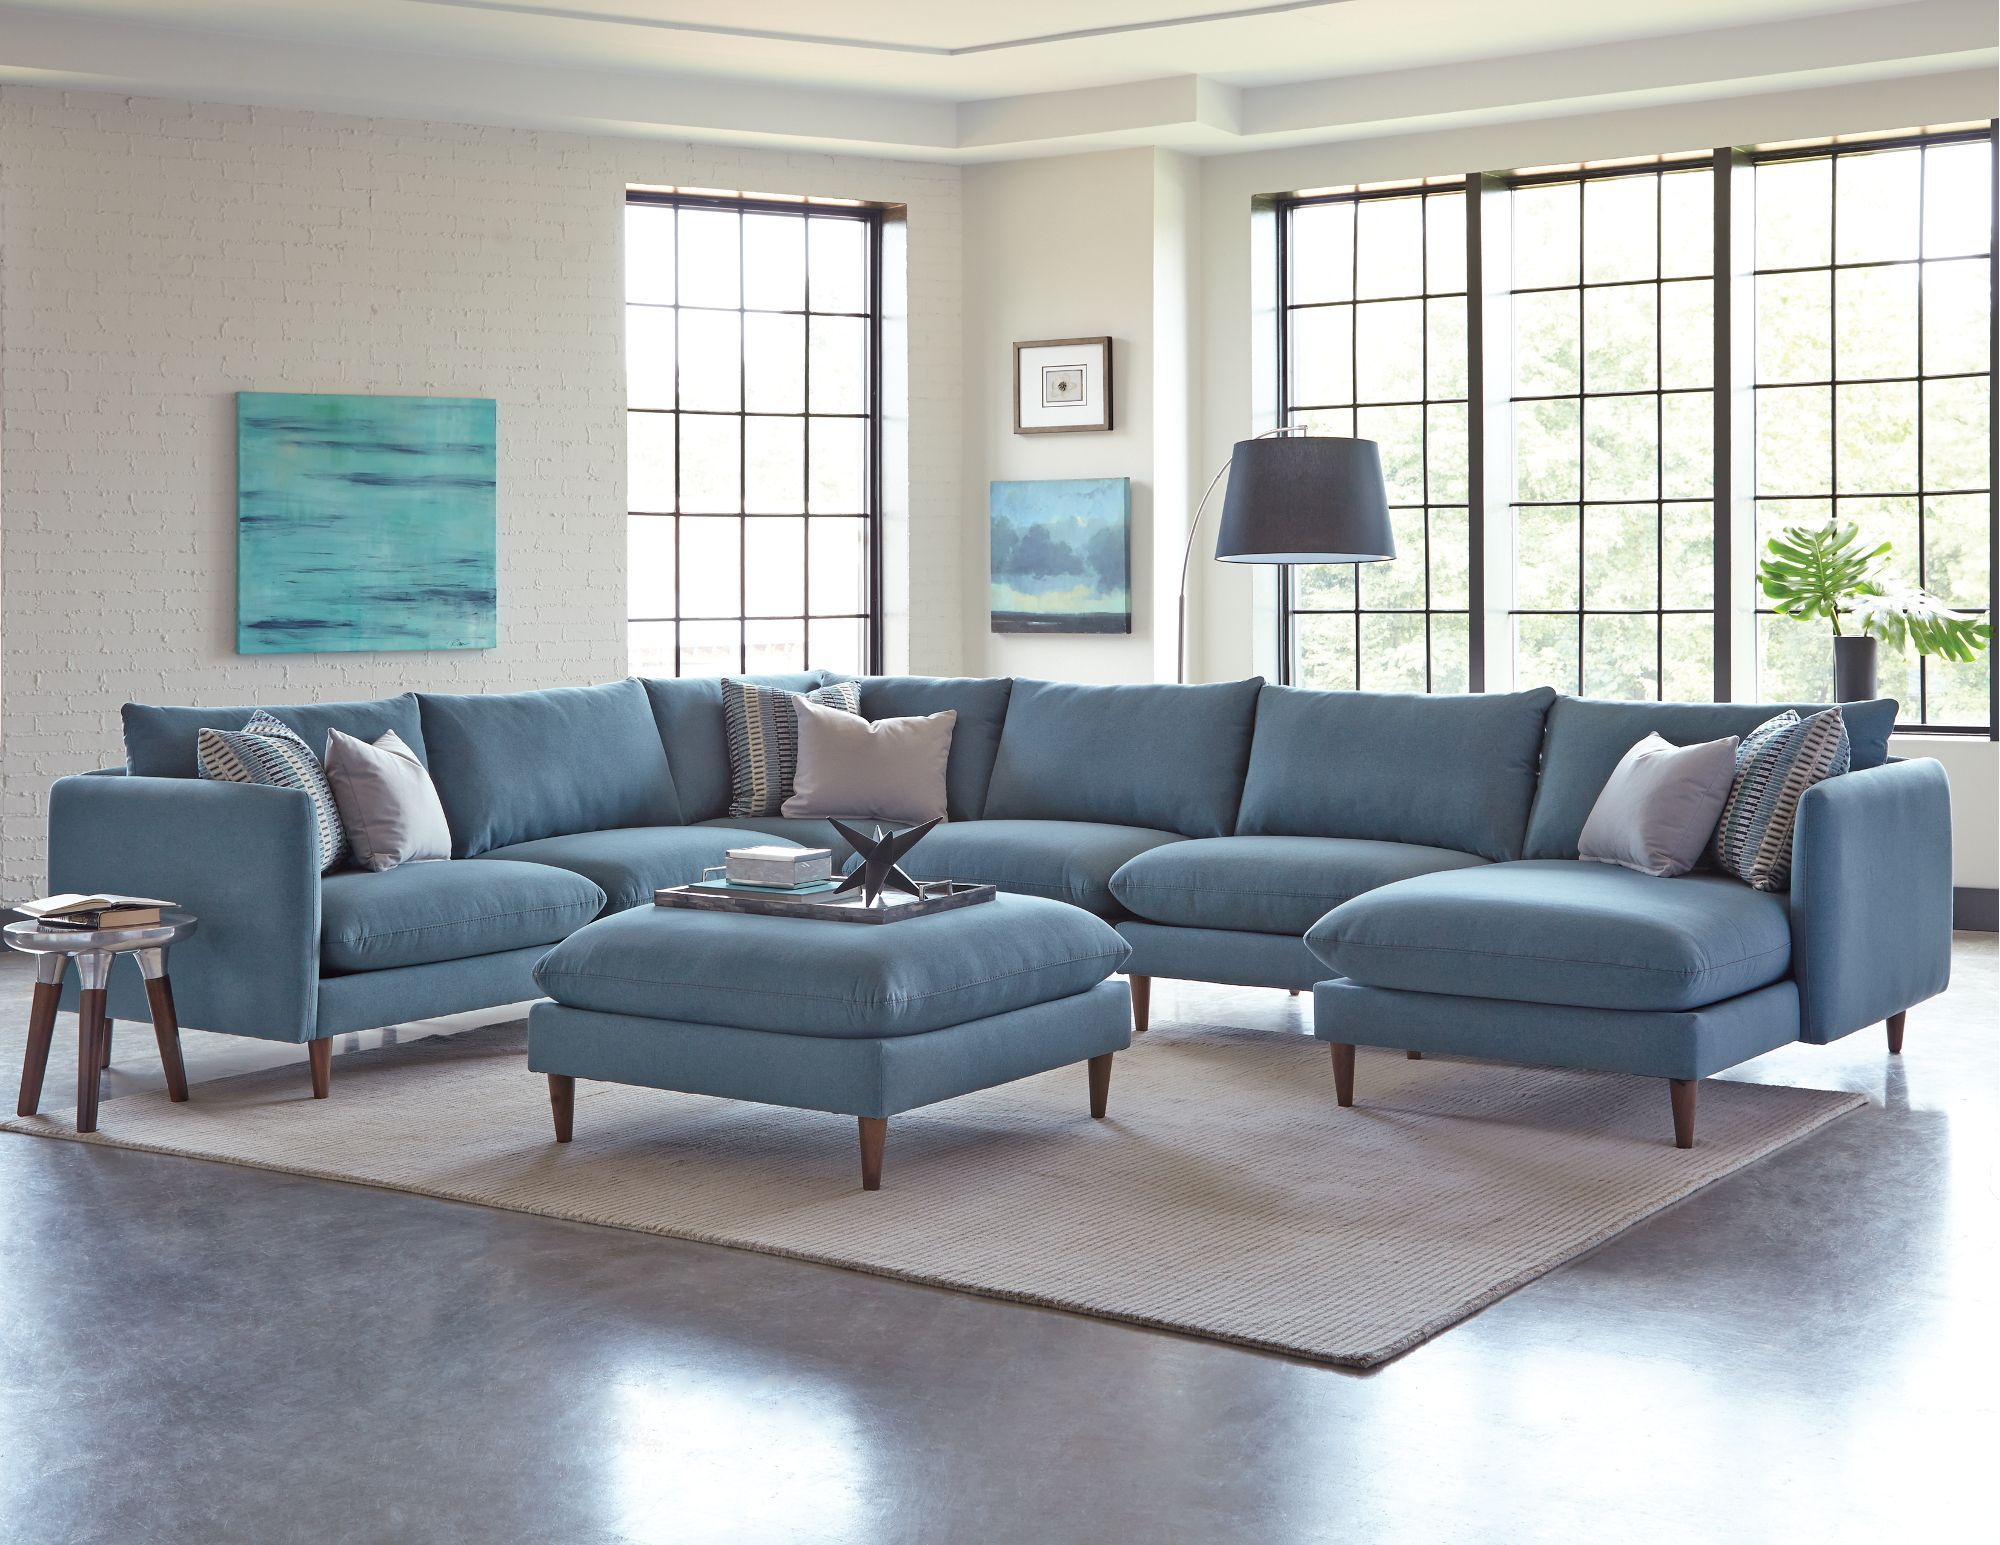 Modern Furniture Melbourne melbourne blue upholstered 6-piece casual modern sectional